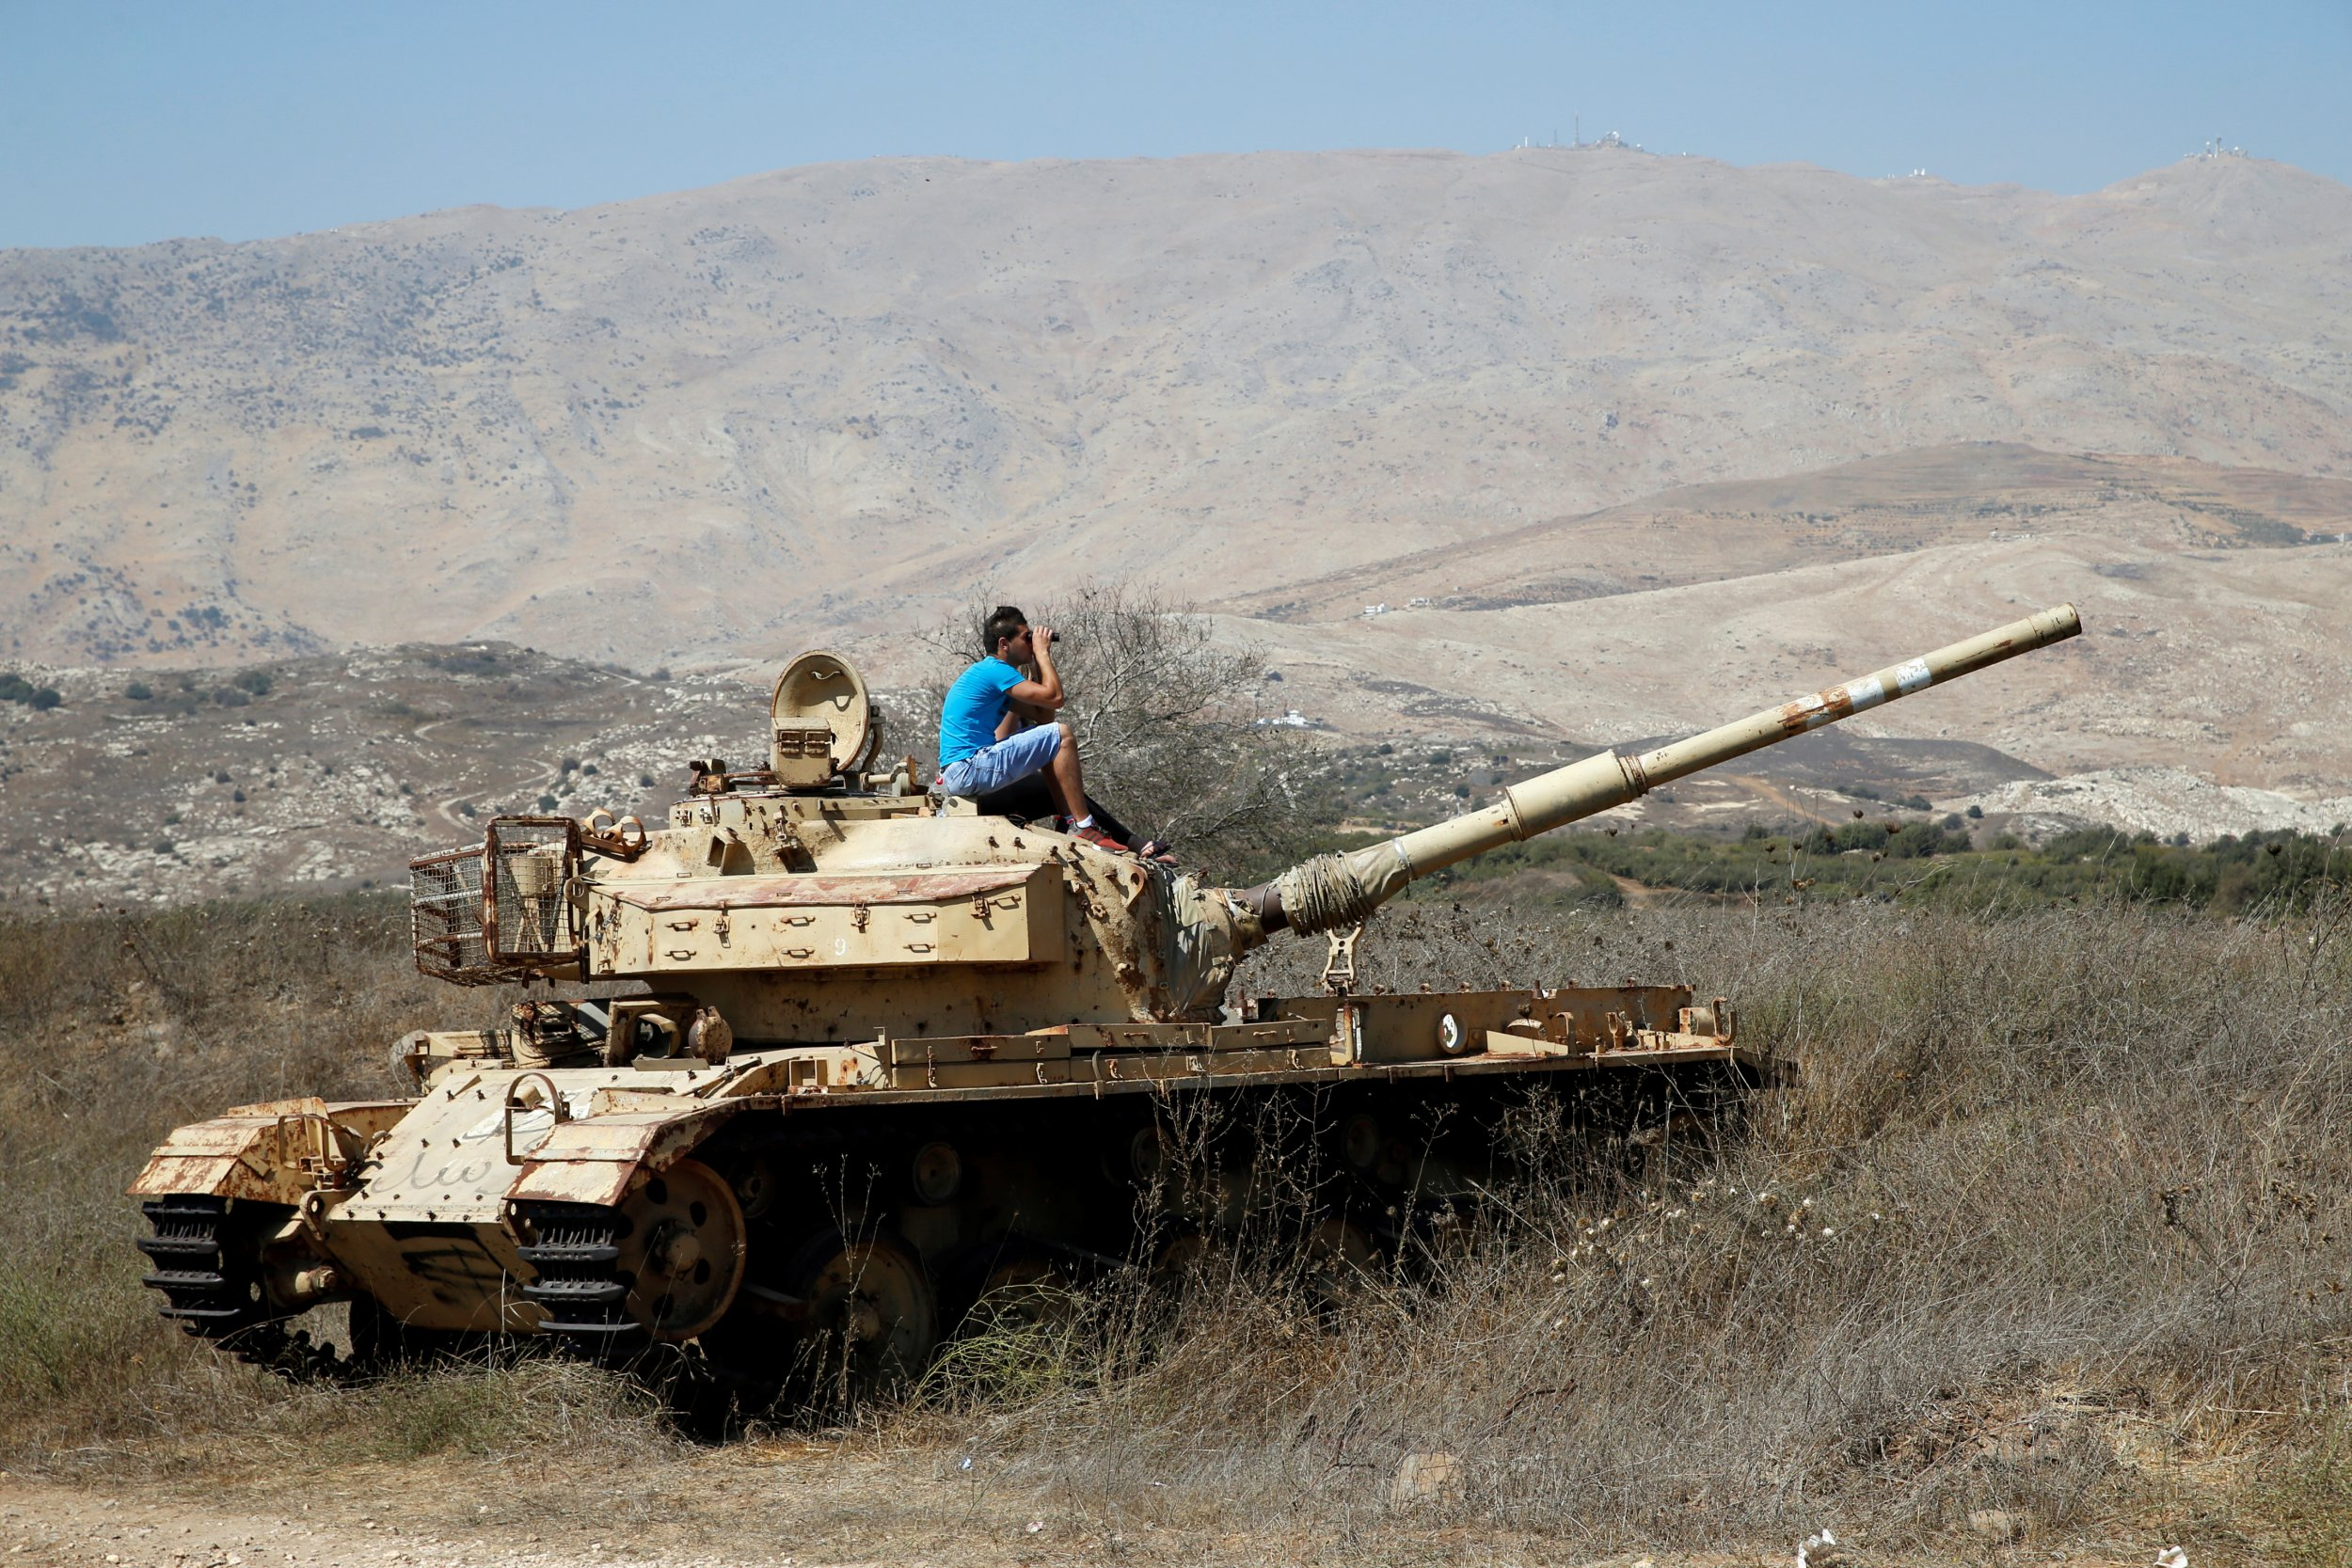 A man on a tank watching Syrian fighting